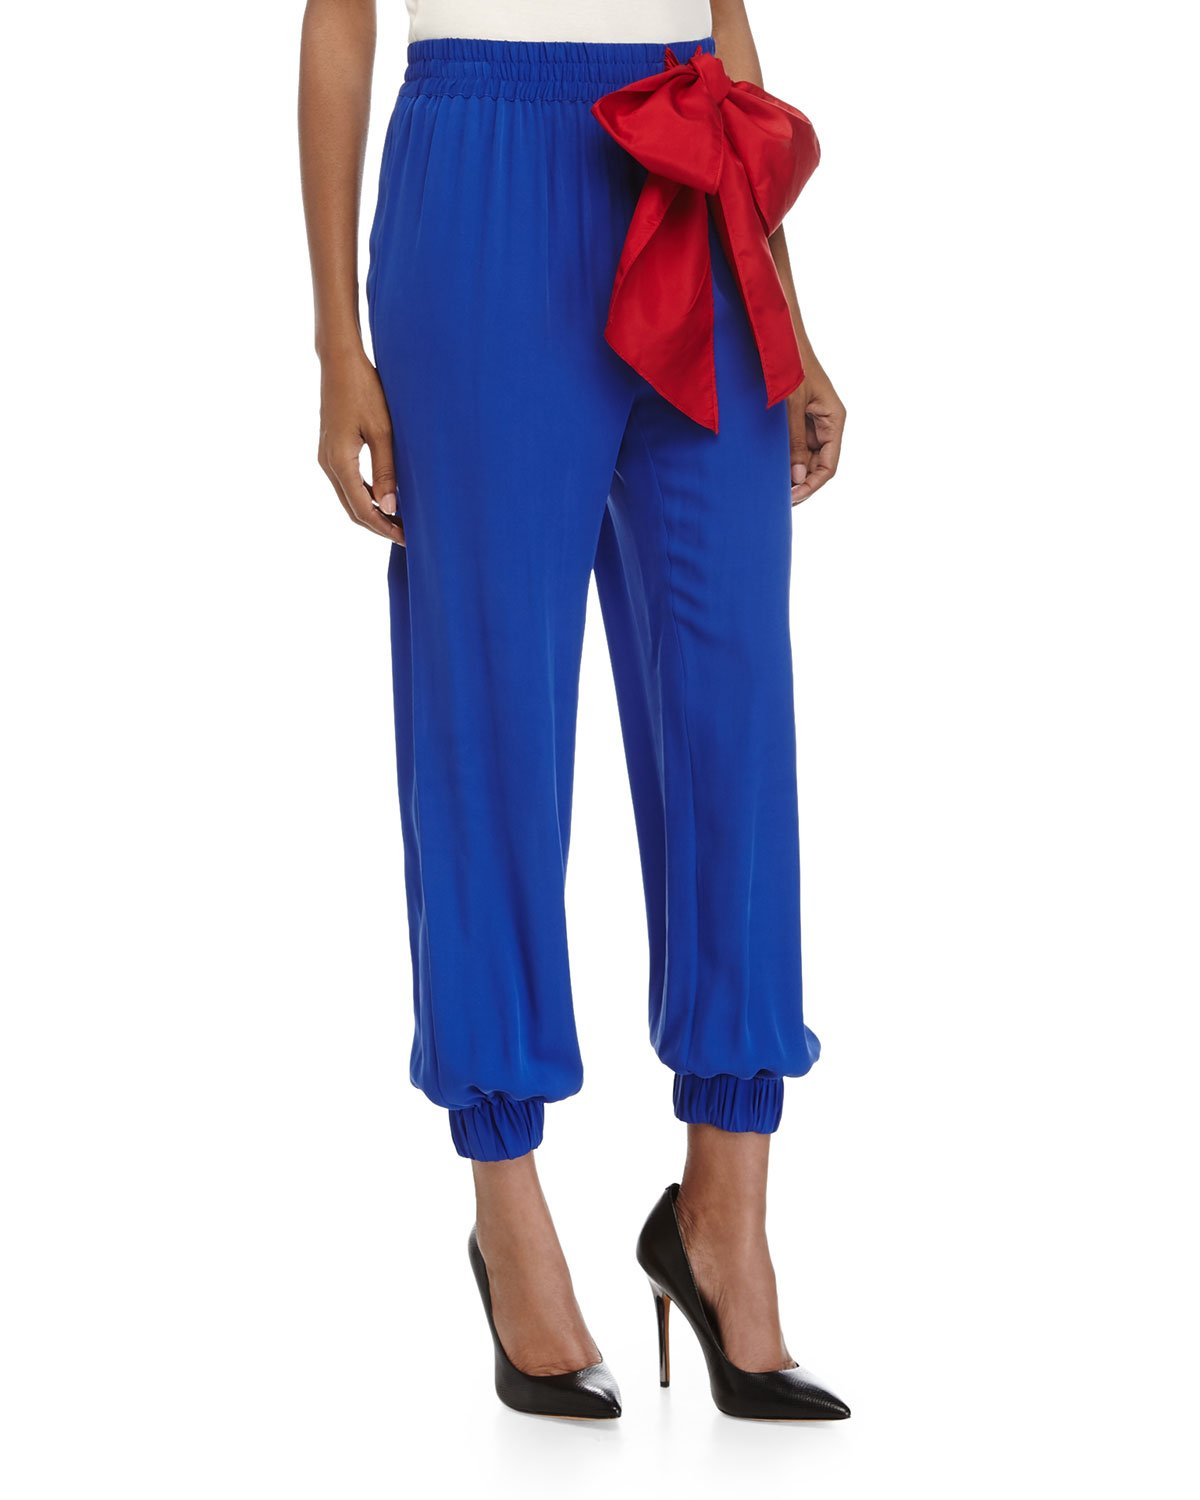 Red Valentino Silk Tie Pants (42, Blue)